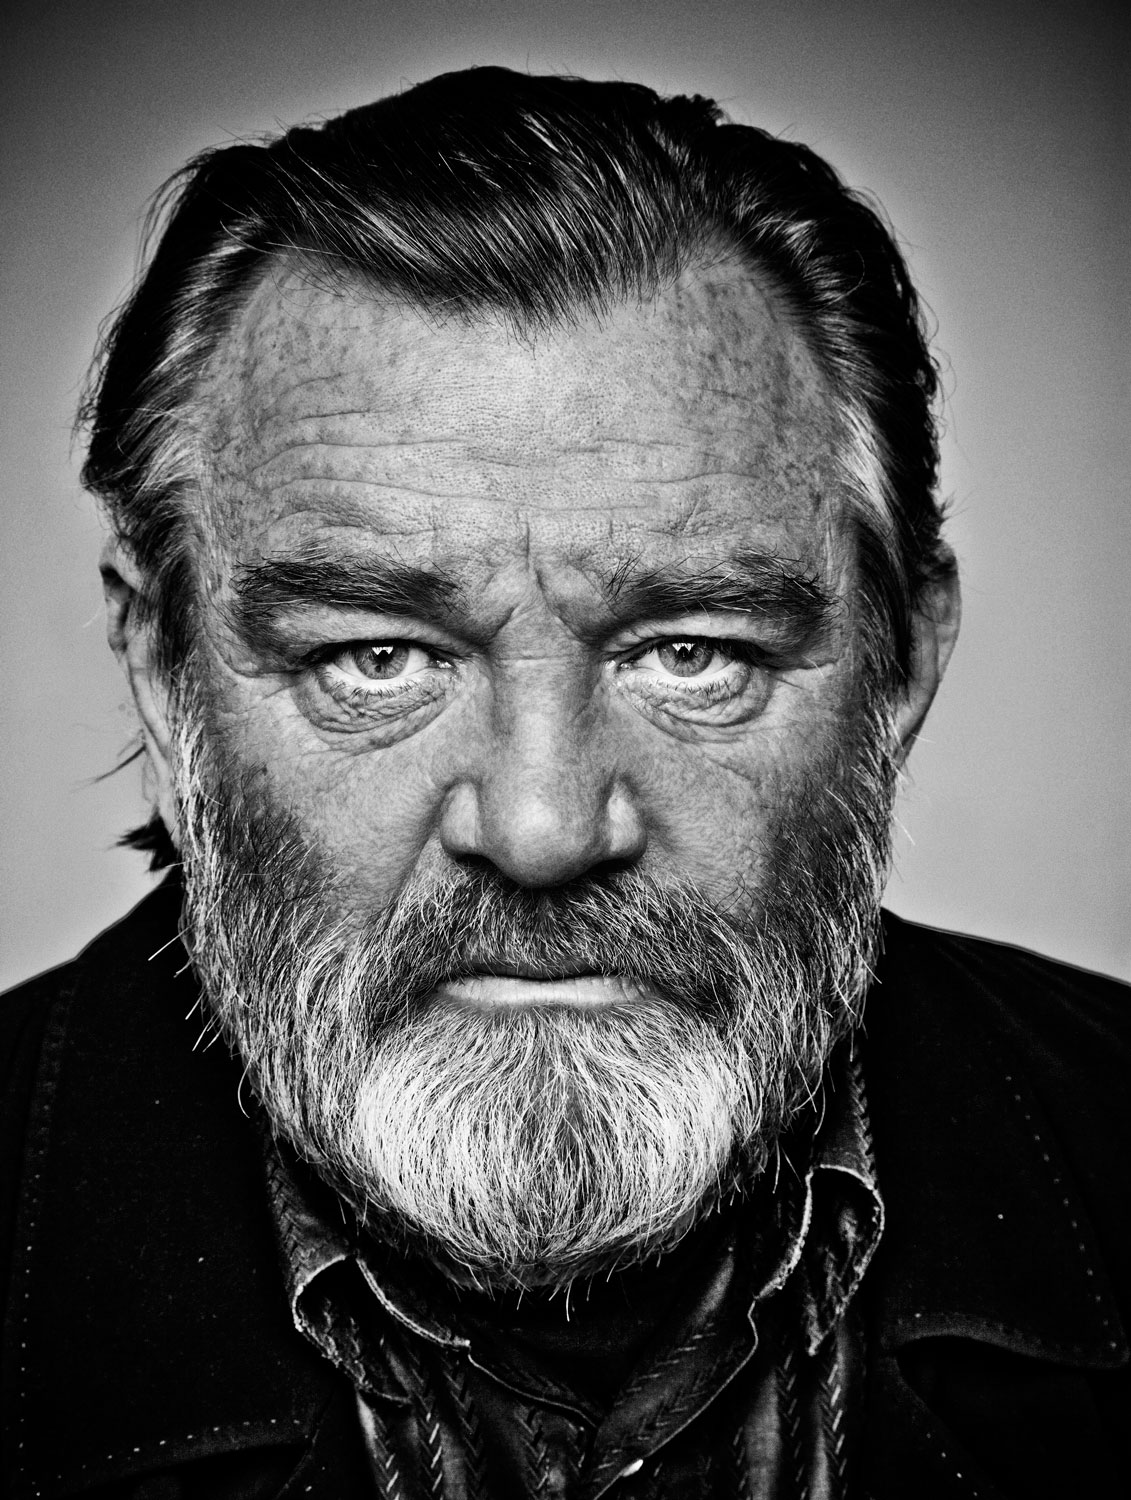 BRENDAN GLEESON AT 9 BOND STREET STUDIOS. PHOTOGRAPHED BY BARRY MCCALL FOR NEW YORK MOVES MAGAZINE